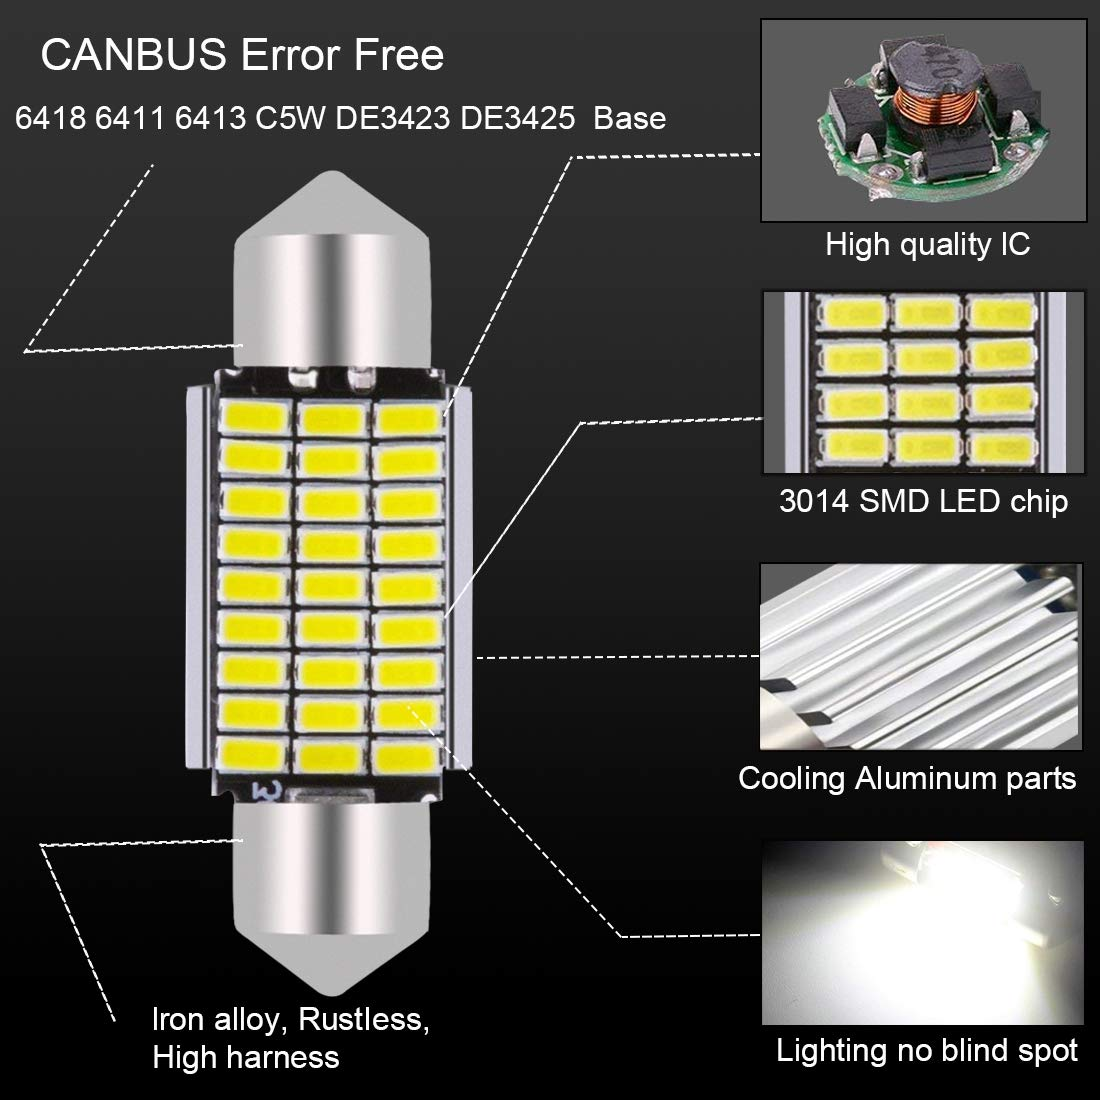 AJUMKER 36mm LED Bulb 1.42in C5W 6500K Xenon White 12V Extremely Bright 3014 Chipsets CanBus Error Free 6418 6411 6413 DE3423 DE3425 LED Festoon Car Interior Dome Map License Plate Lights Pack of 4